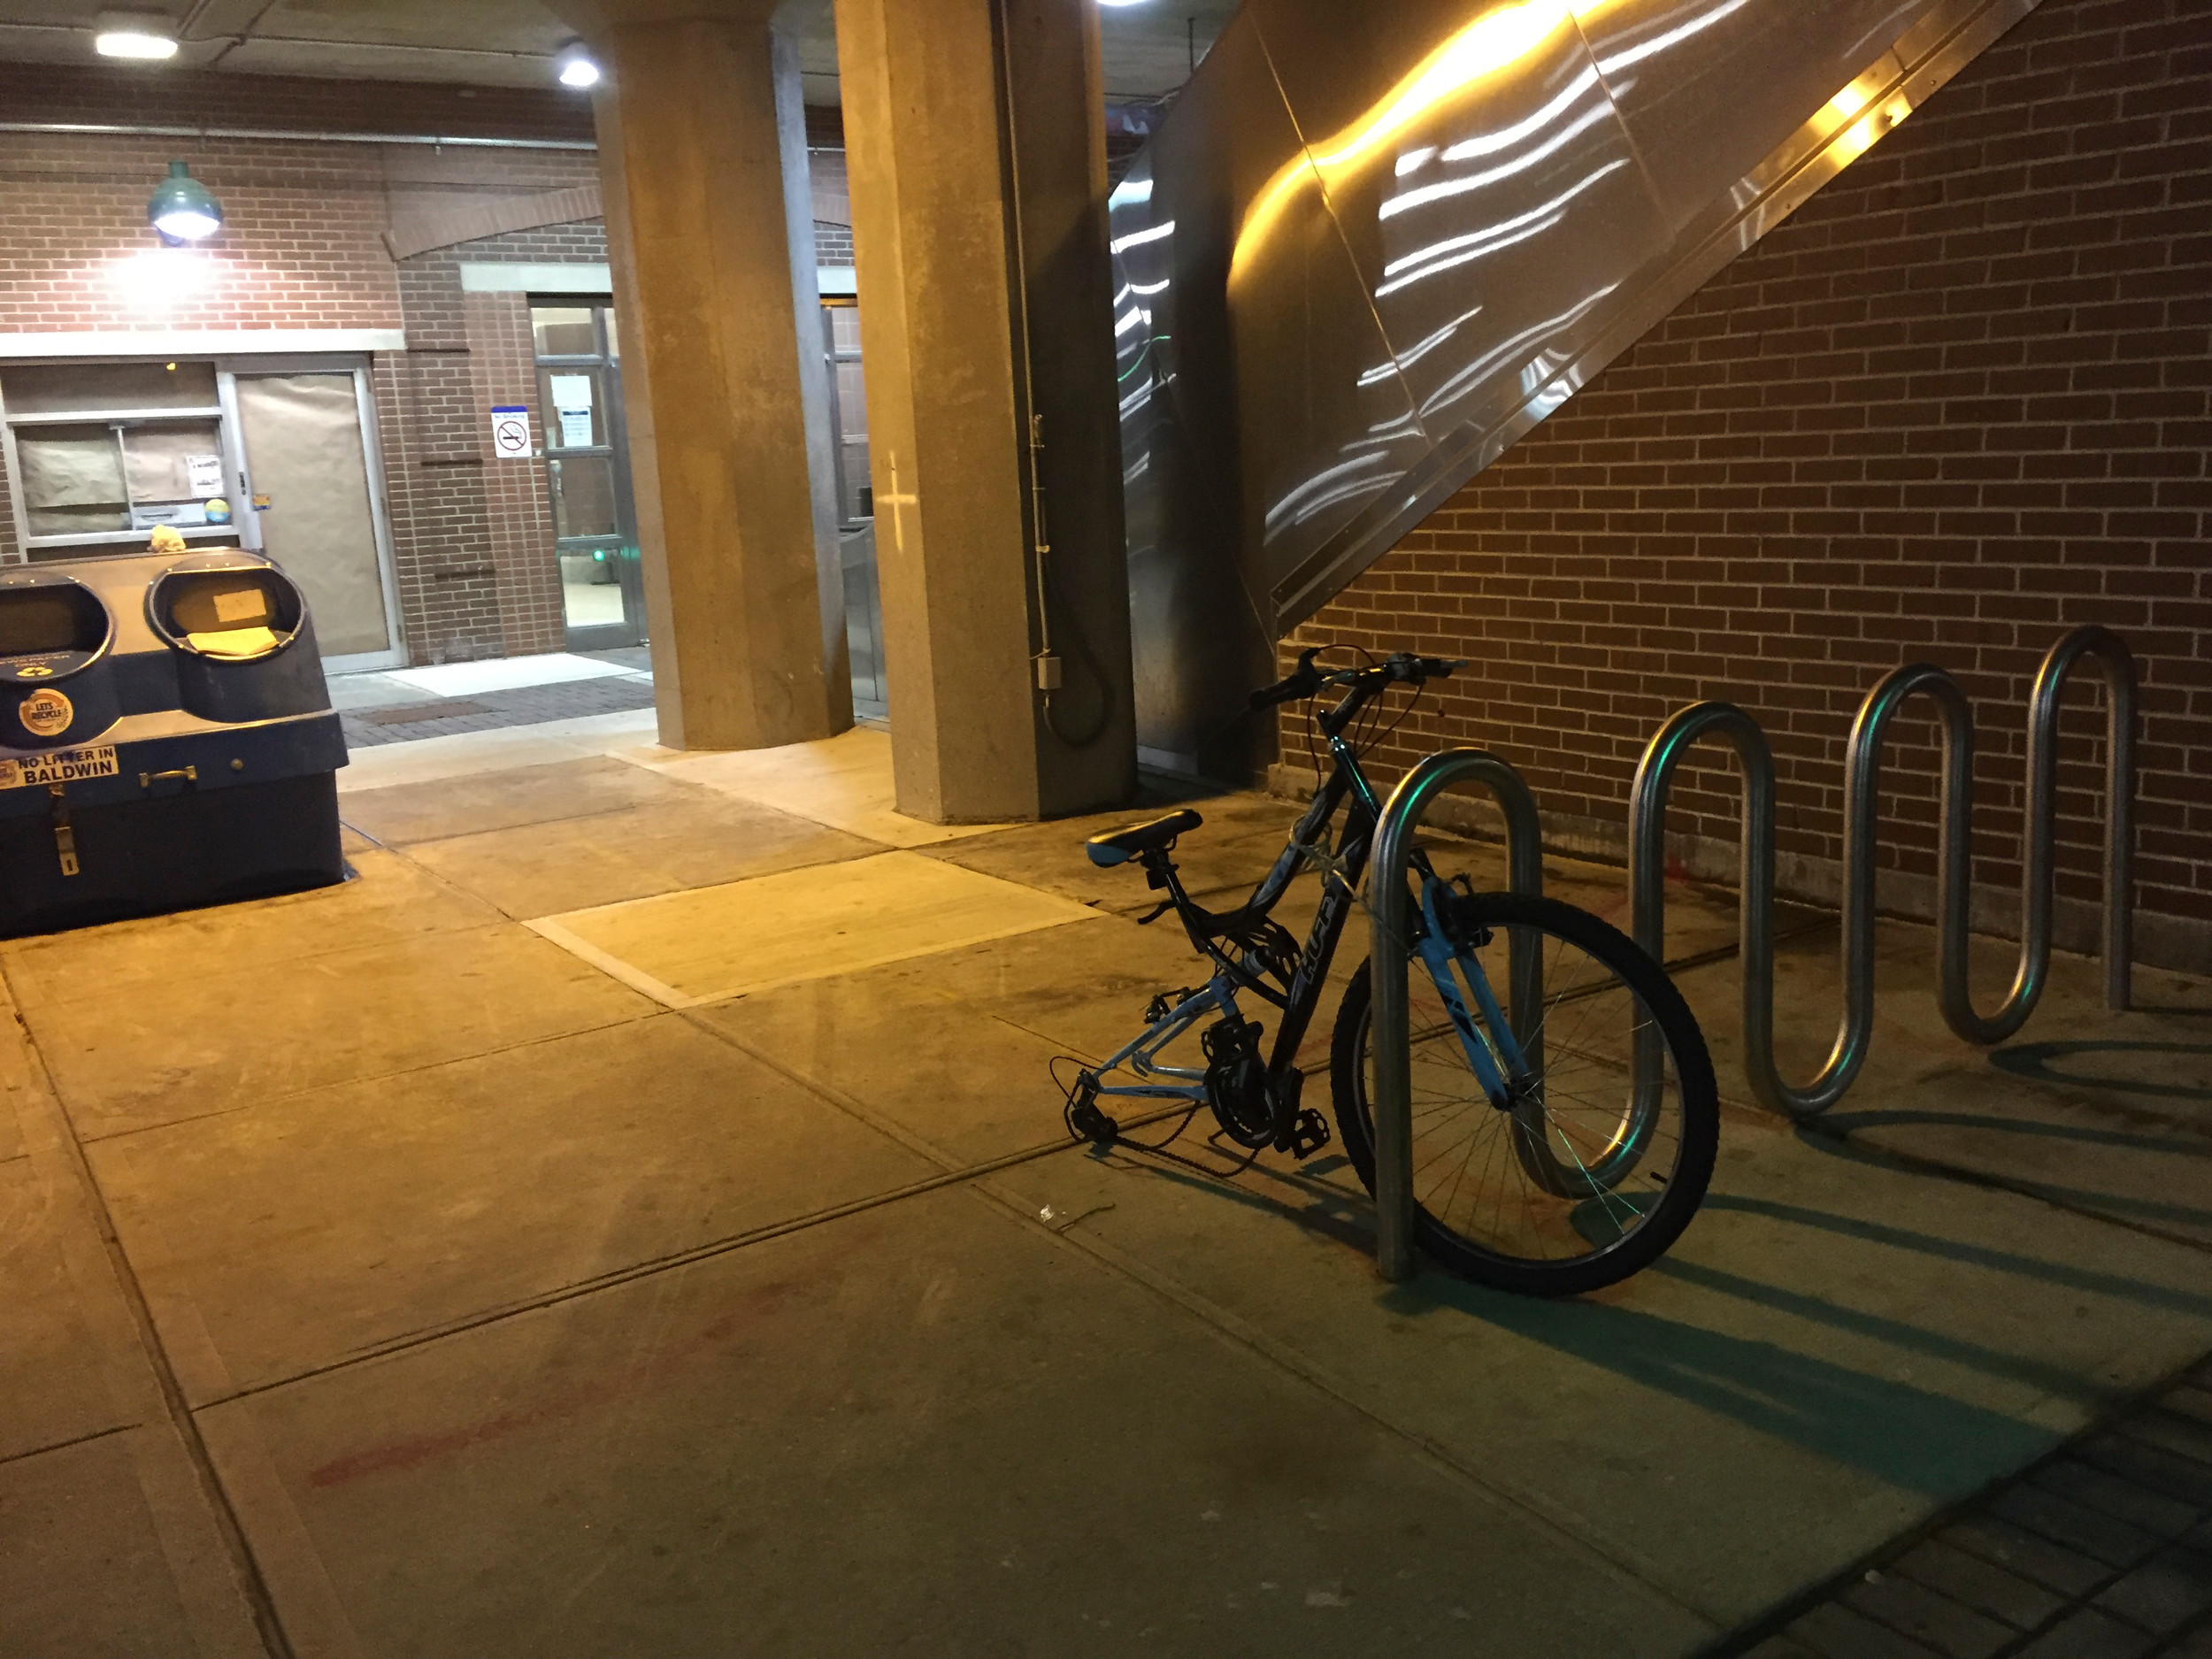 Some bicyclists have taken to removing their wheels to prevent thefts.